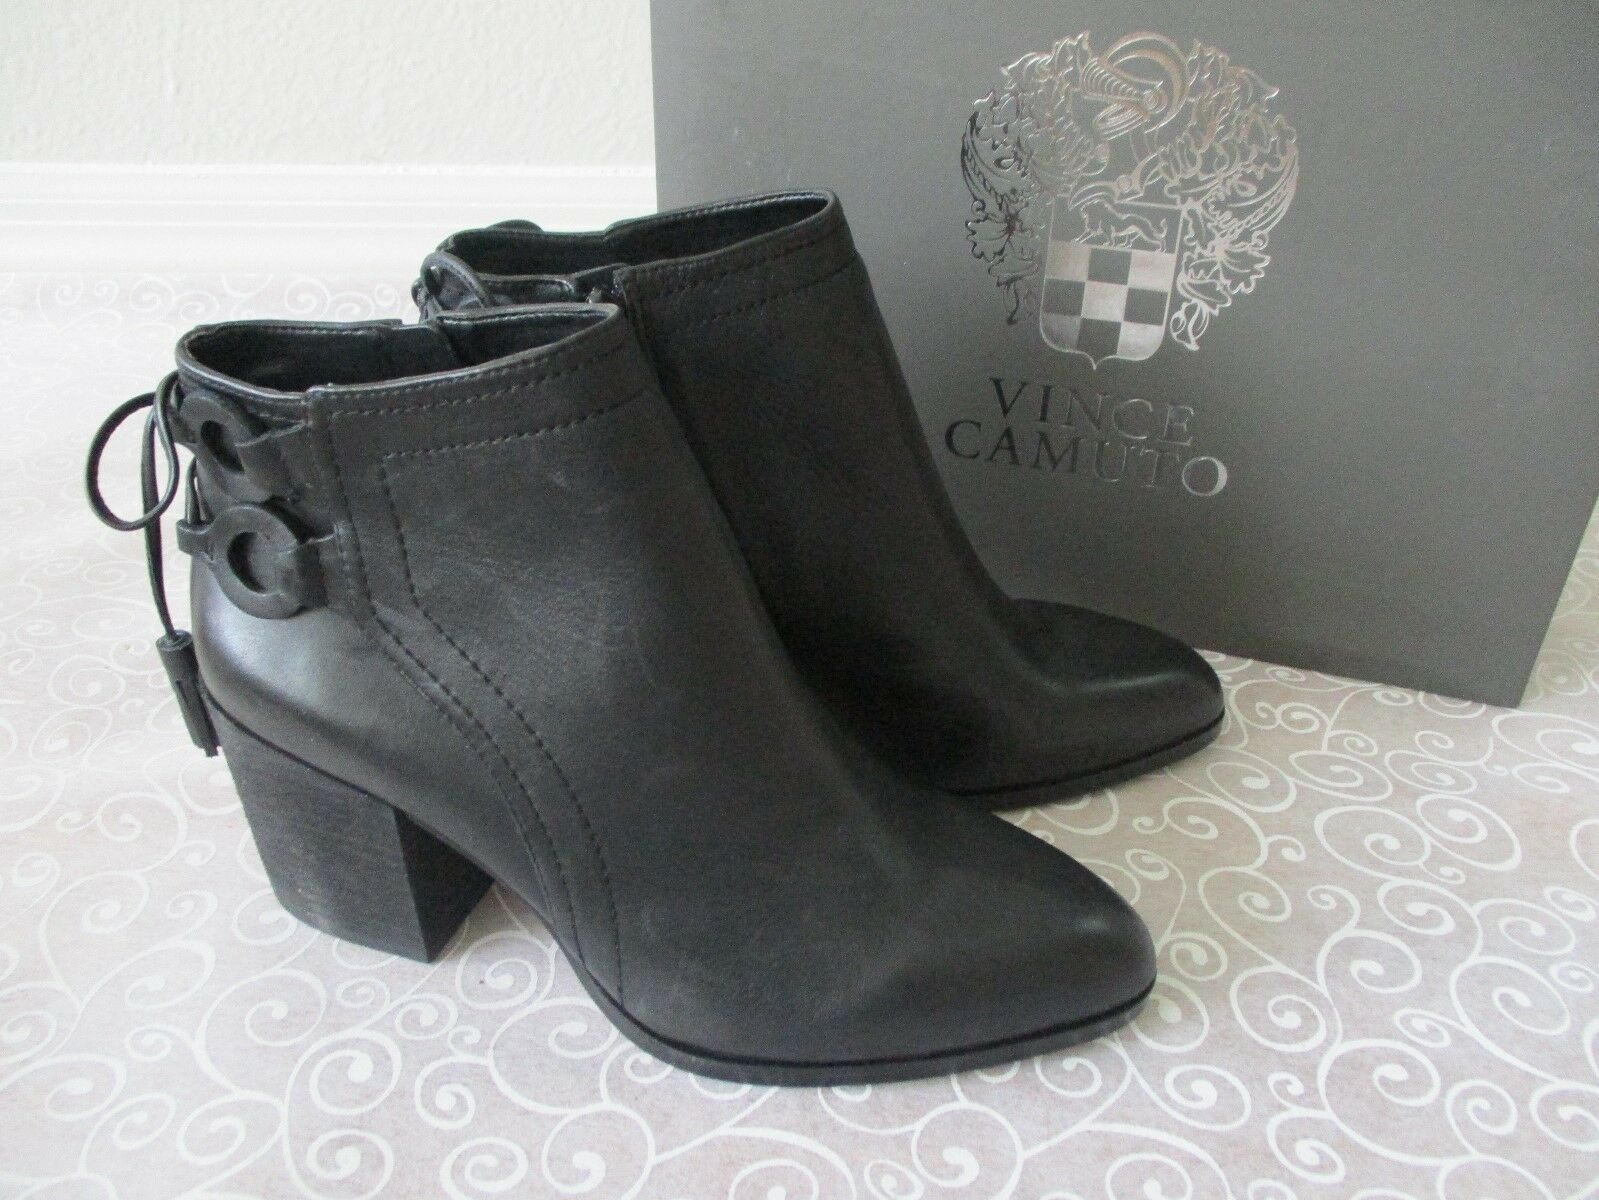 VINCE CAMUTO BLACK BLACK BLACK LEATHER ANKLE ZIP UP Stiefel SIZE 11 M - NEW e95dd6